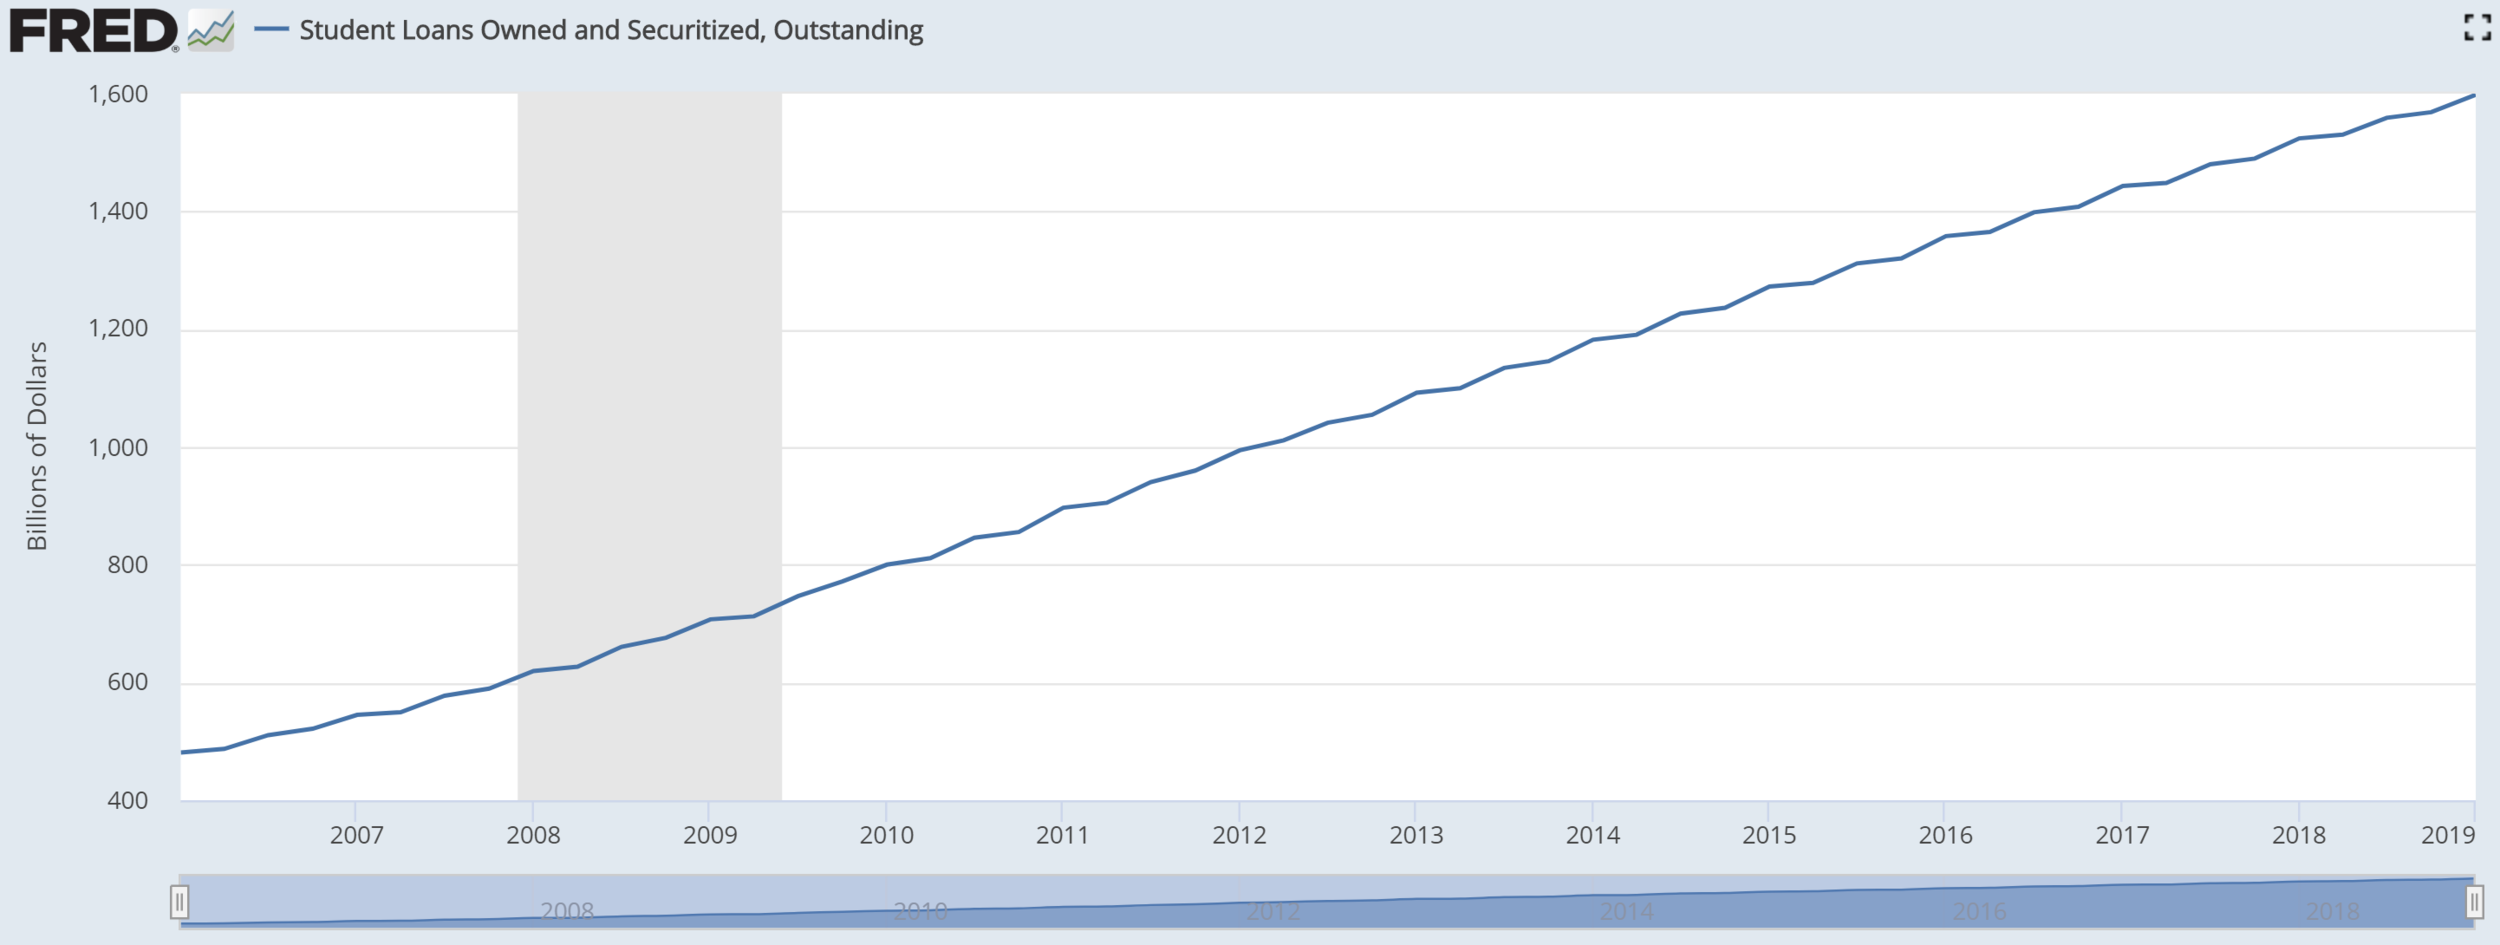 student loan debt over time.PNG